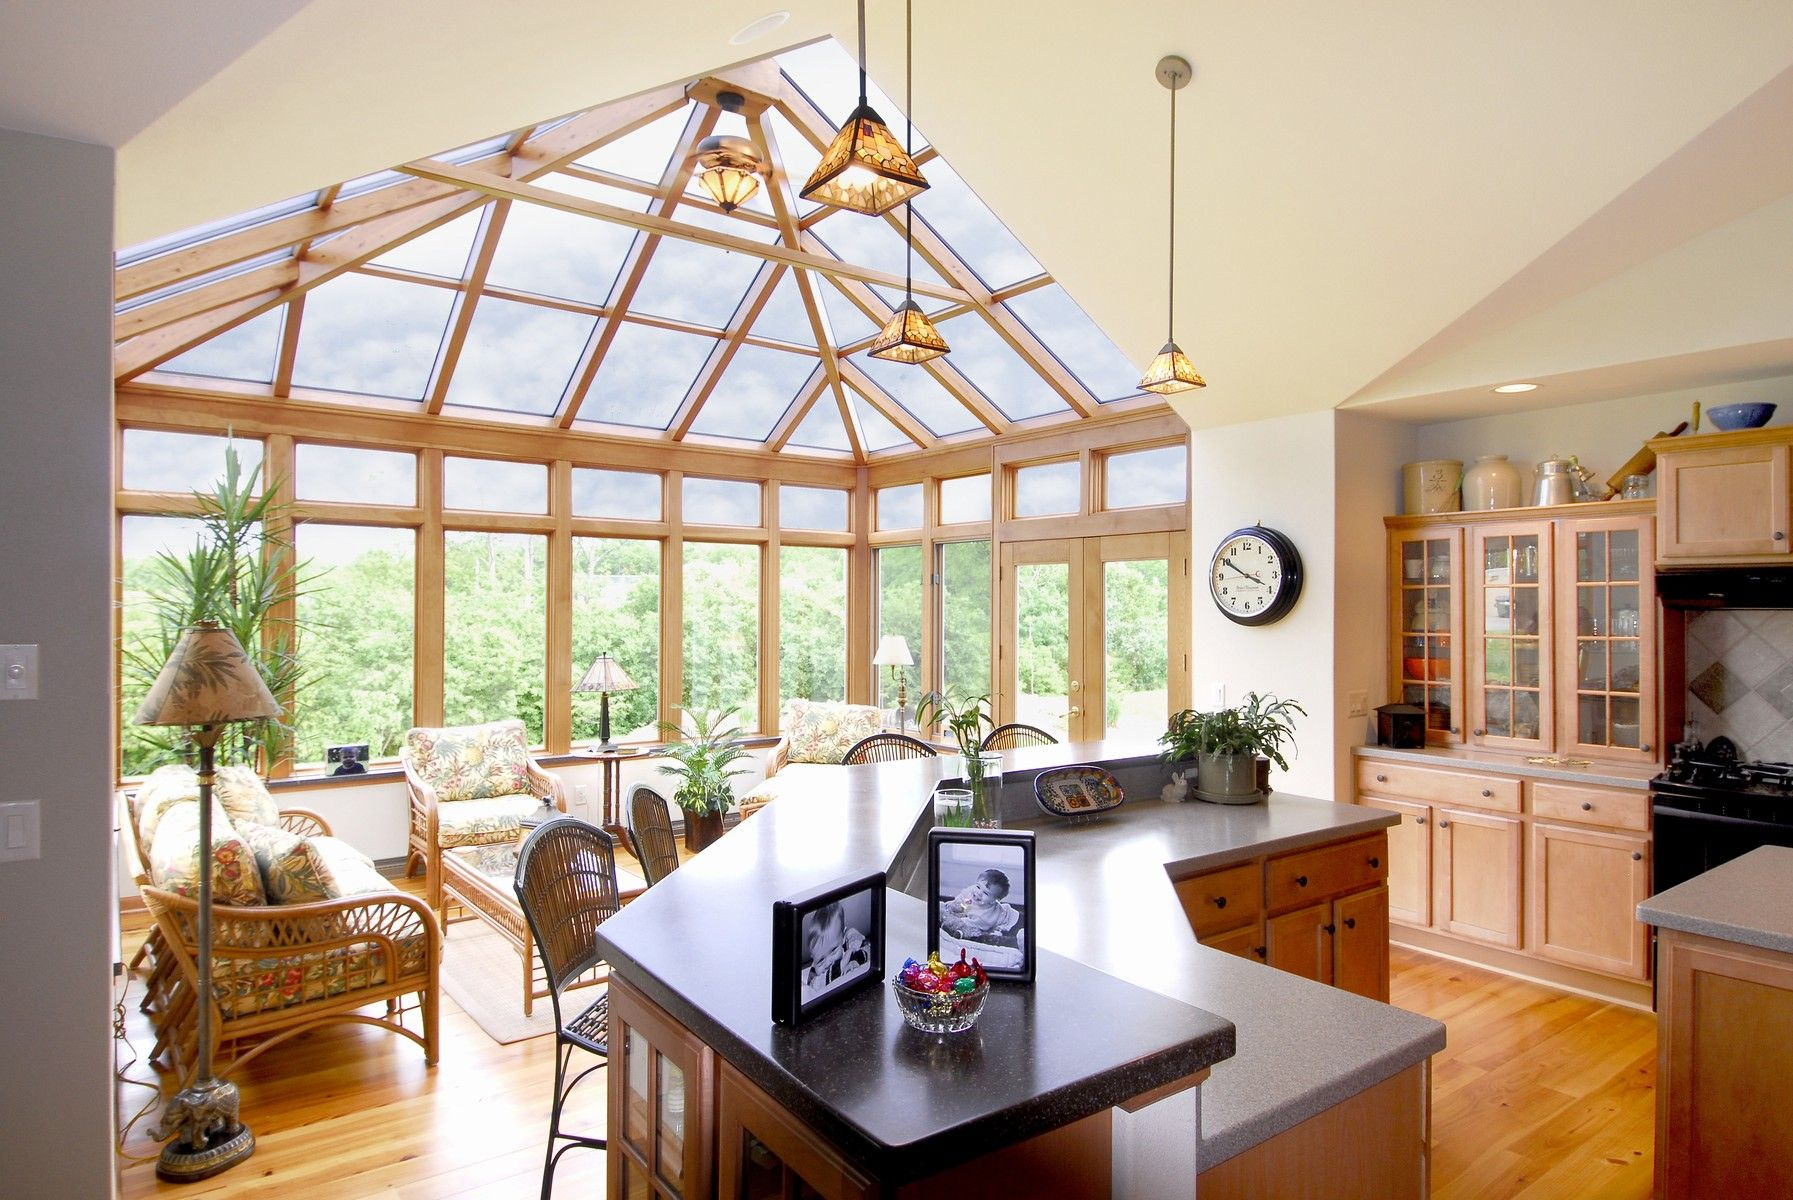 Gorgeous and open kitchen Let us build a sunroom addition to bring